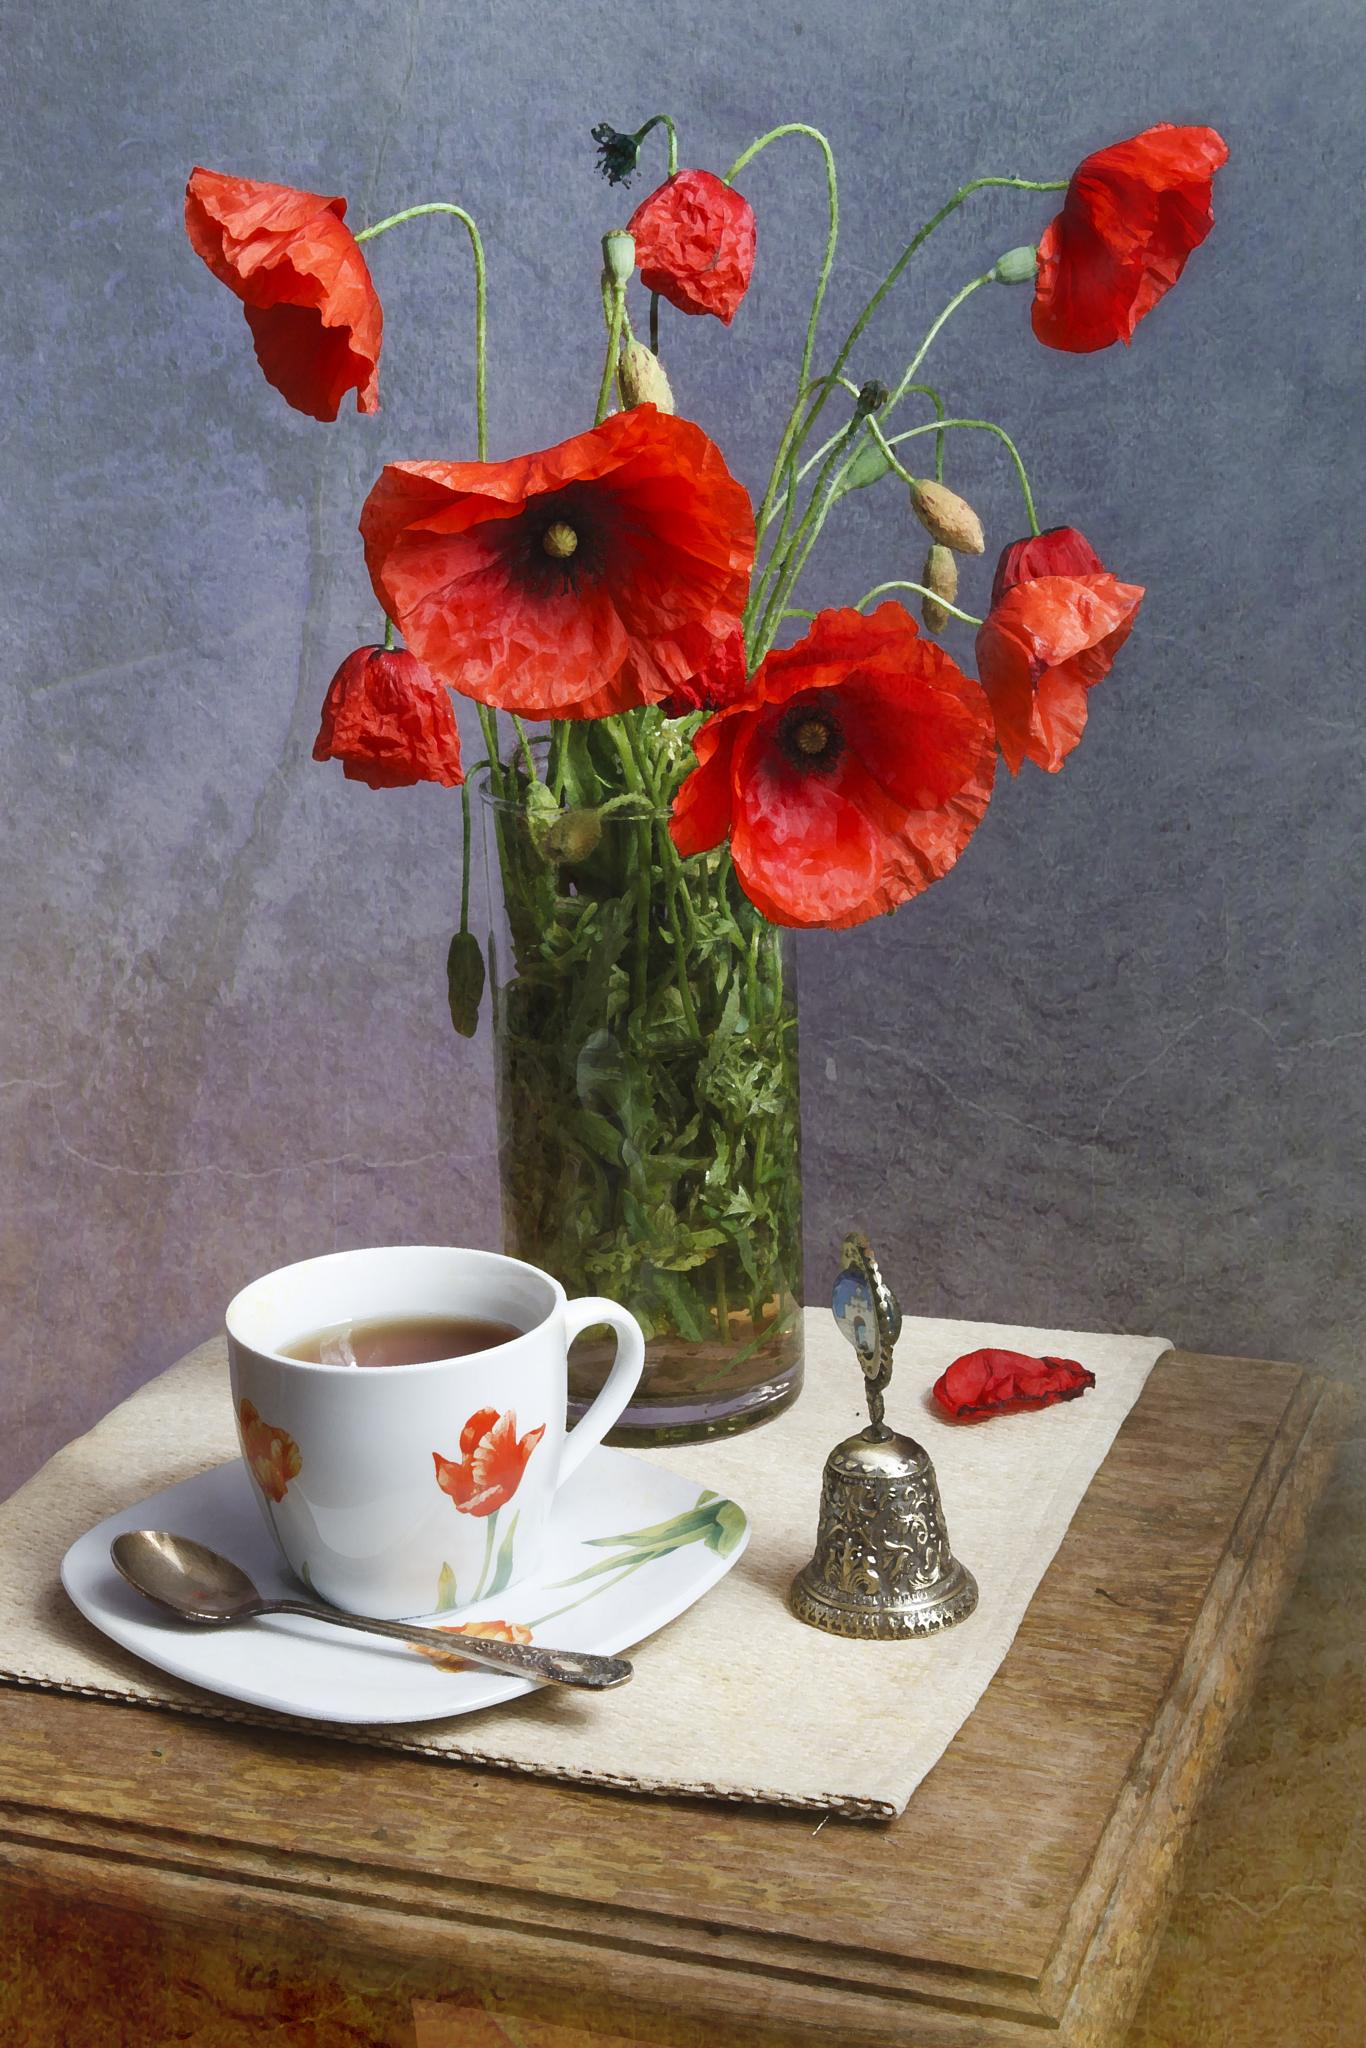 red poppies and tea  by aleksandr.junajev.1